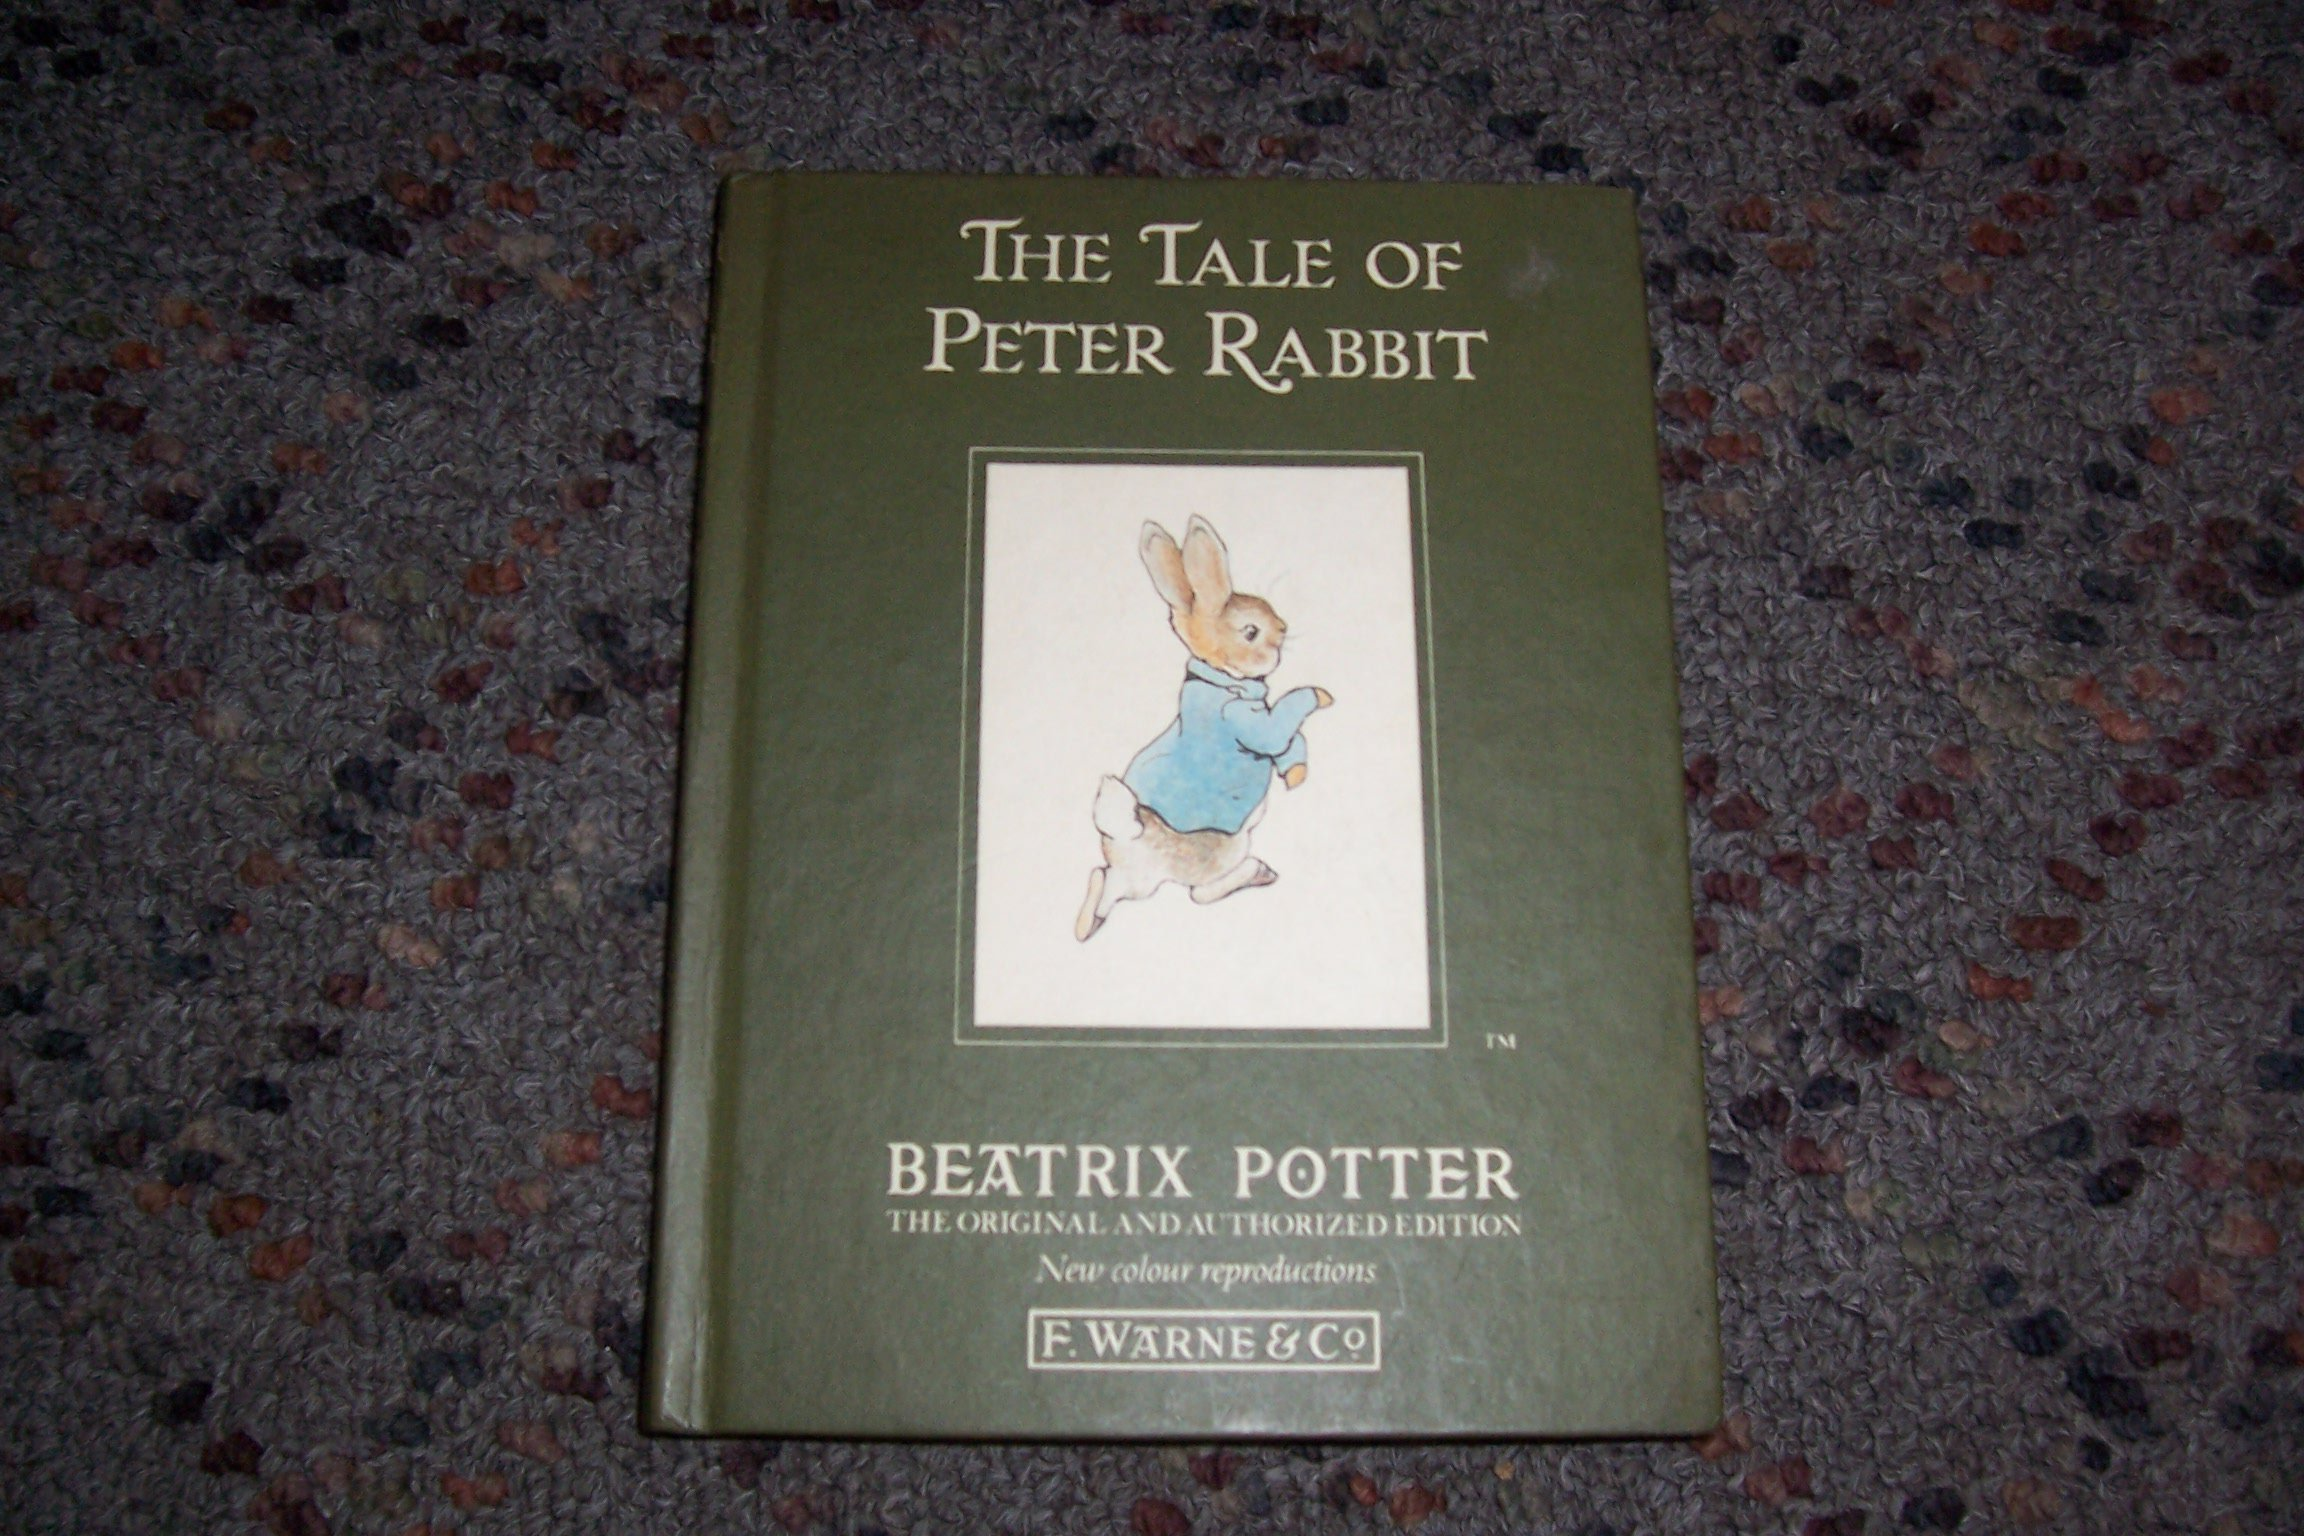 FOR SALE: The Tale of Peter Rabbit small hardback version